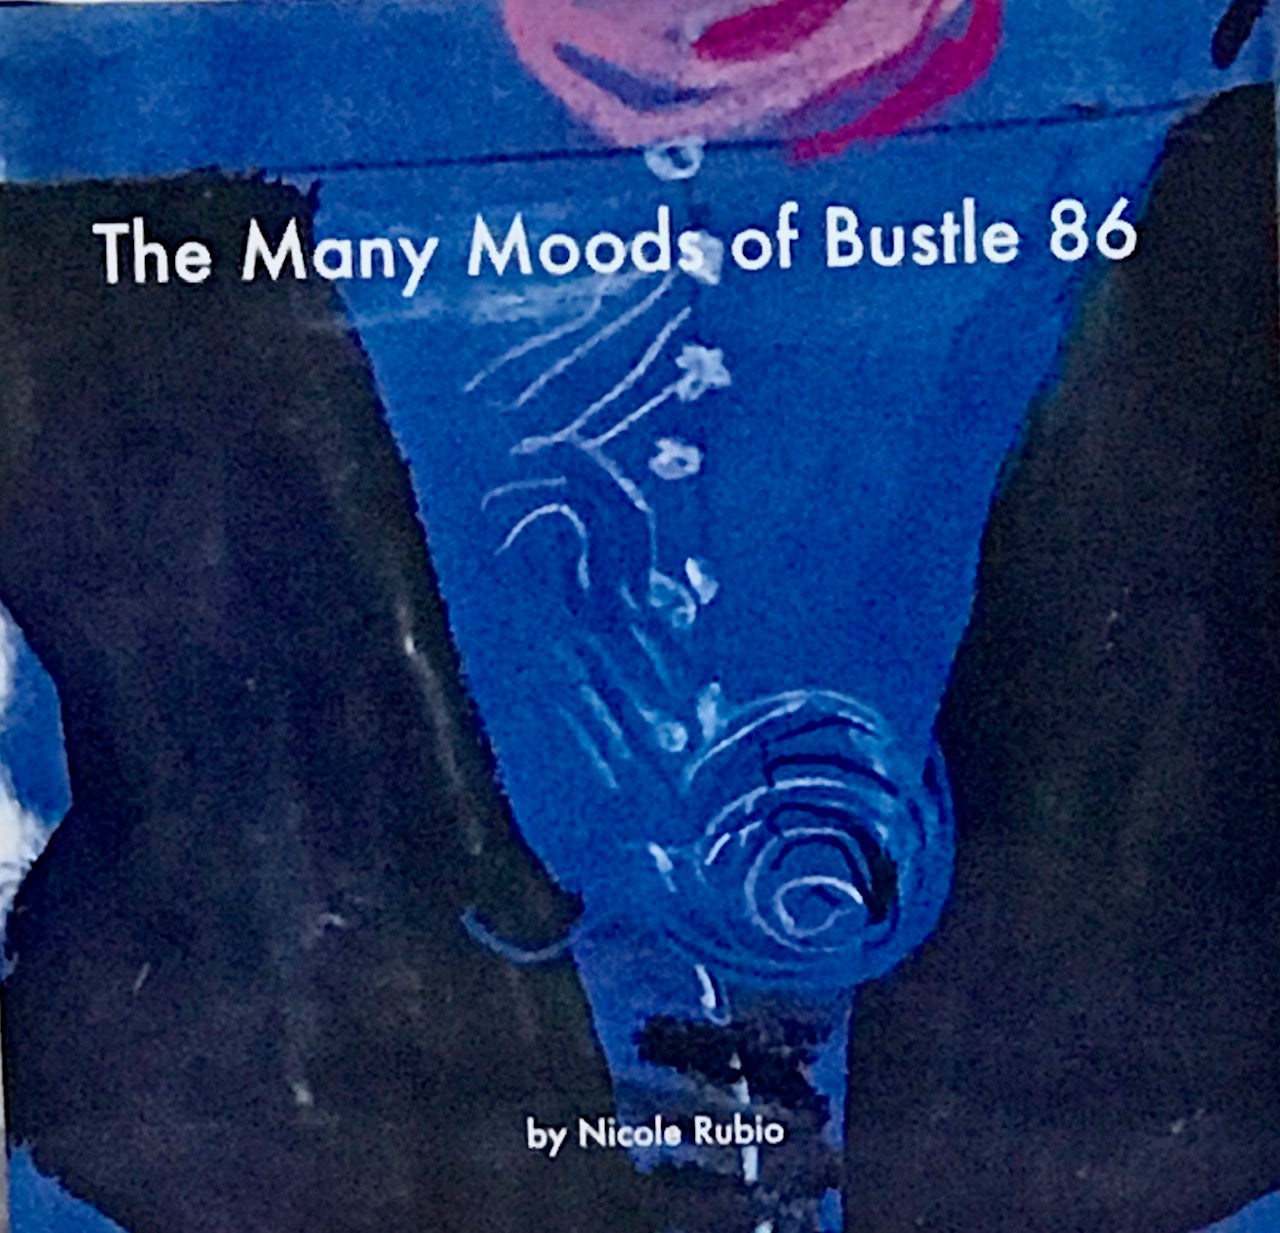 Nicole Rubio: (S)The Many Moods of Bustle 86